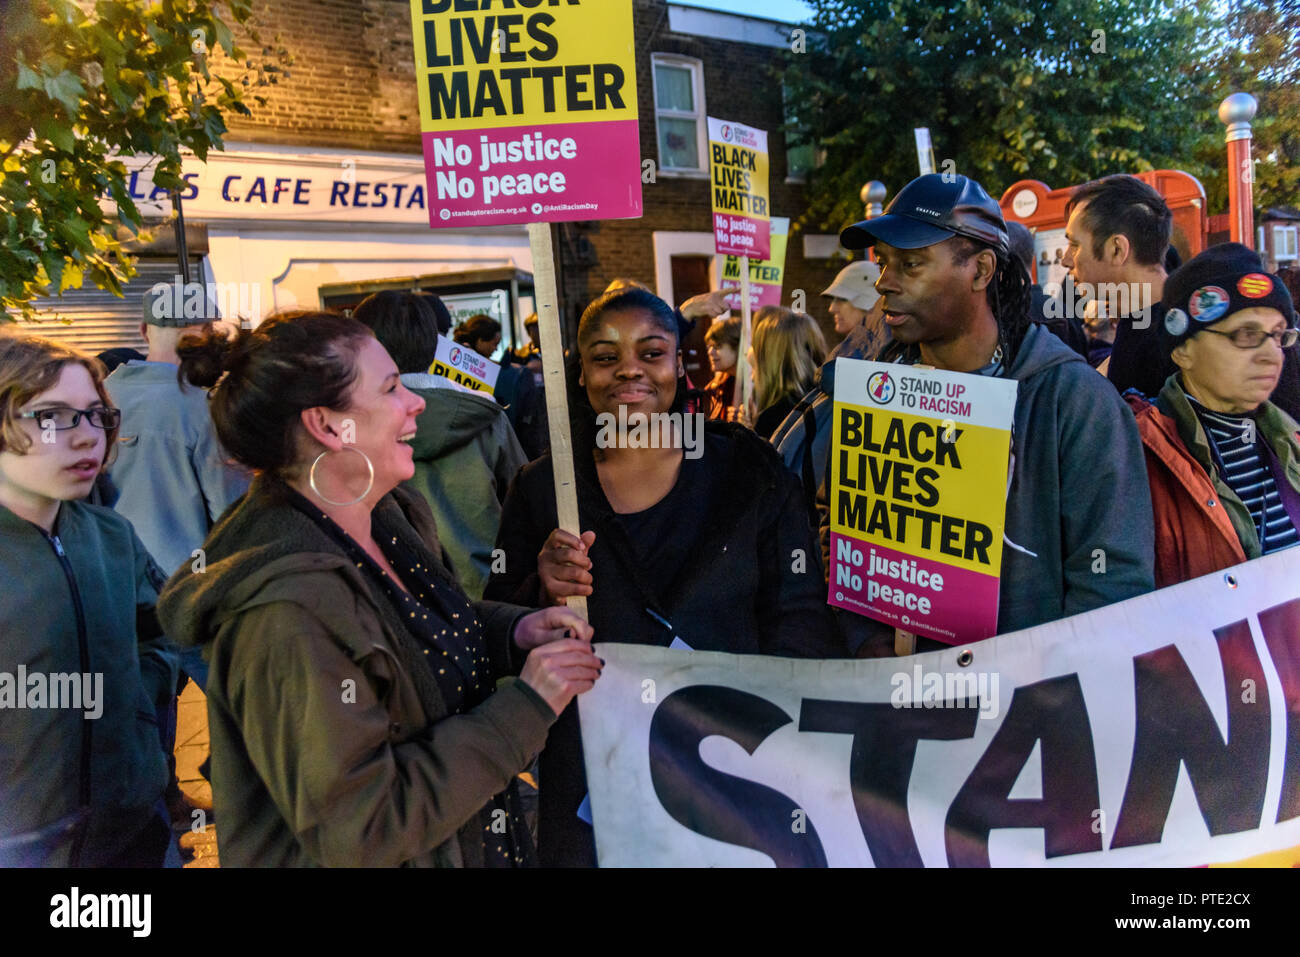 London, UK. October 9th 2018. People behind the Stand Up to Racism banner at the rally outside the New Atlas Cafe Restaurant where a young black man was attacked by police who used obviously unnecessary force when arresting him on suspicion of having been involved in a knife attack. He was assaulted by six officers, and was viciously kicked while officers struggled to handcuff him, andwhen he was well under control and held on the ground he was sprayed in the face with CS gas. Credit: Peter Marshall/Alamy Live News - Stock Image